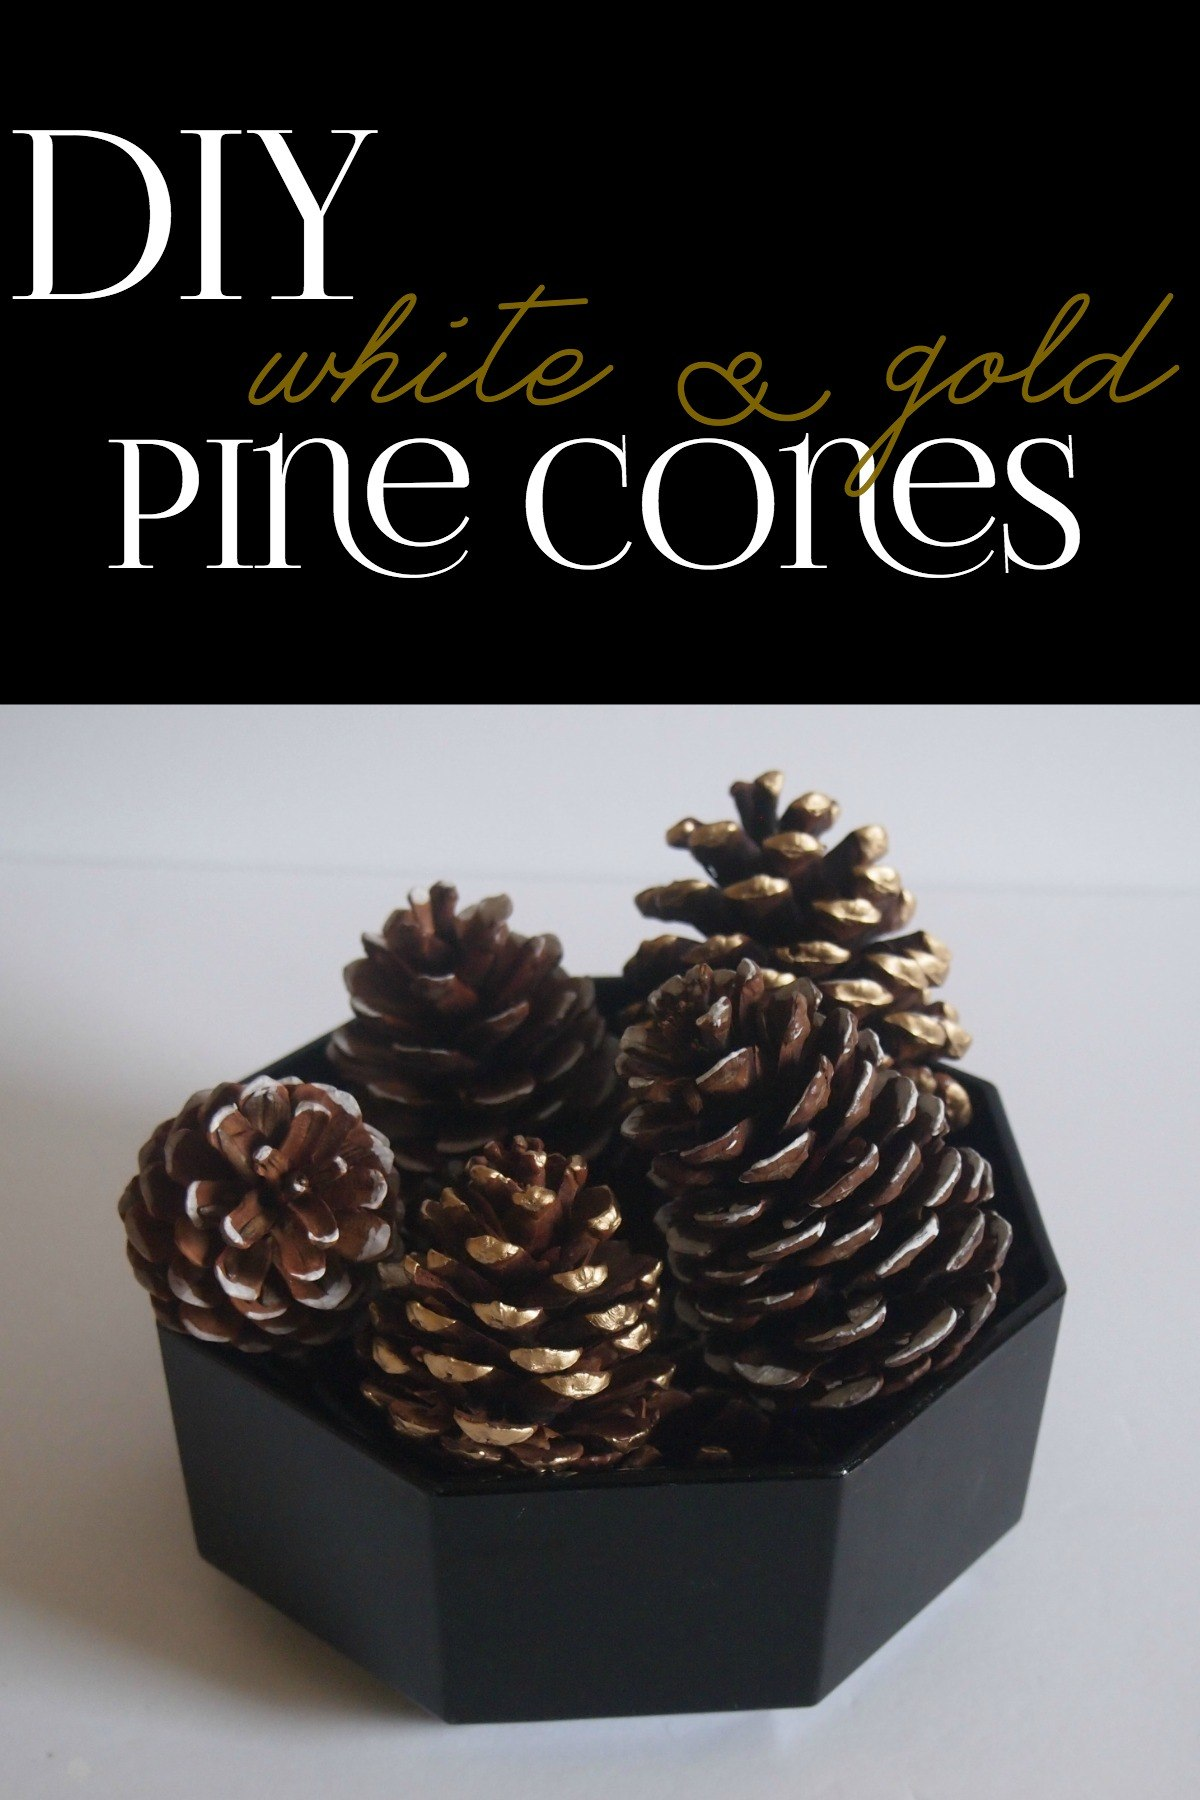 DIY White and Gold Pine Cones DIY Winter Decor Using Painted Pinecones